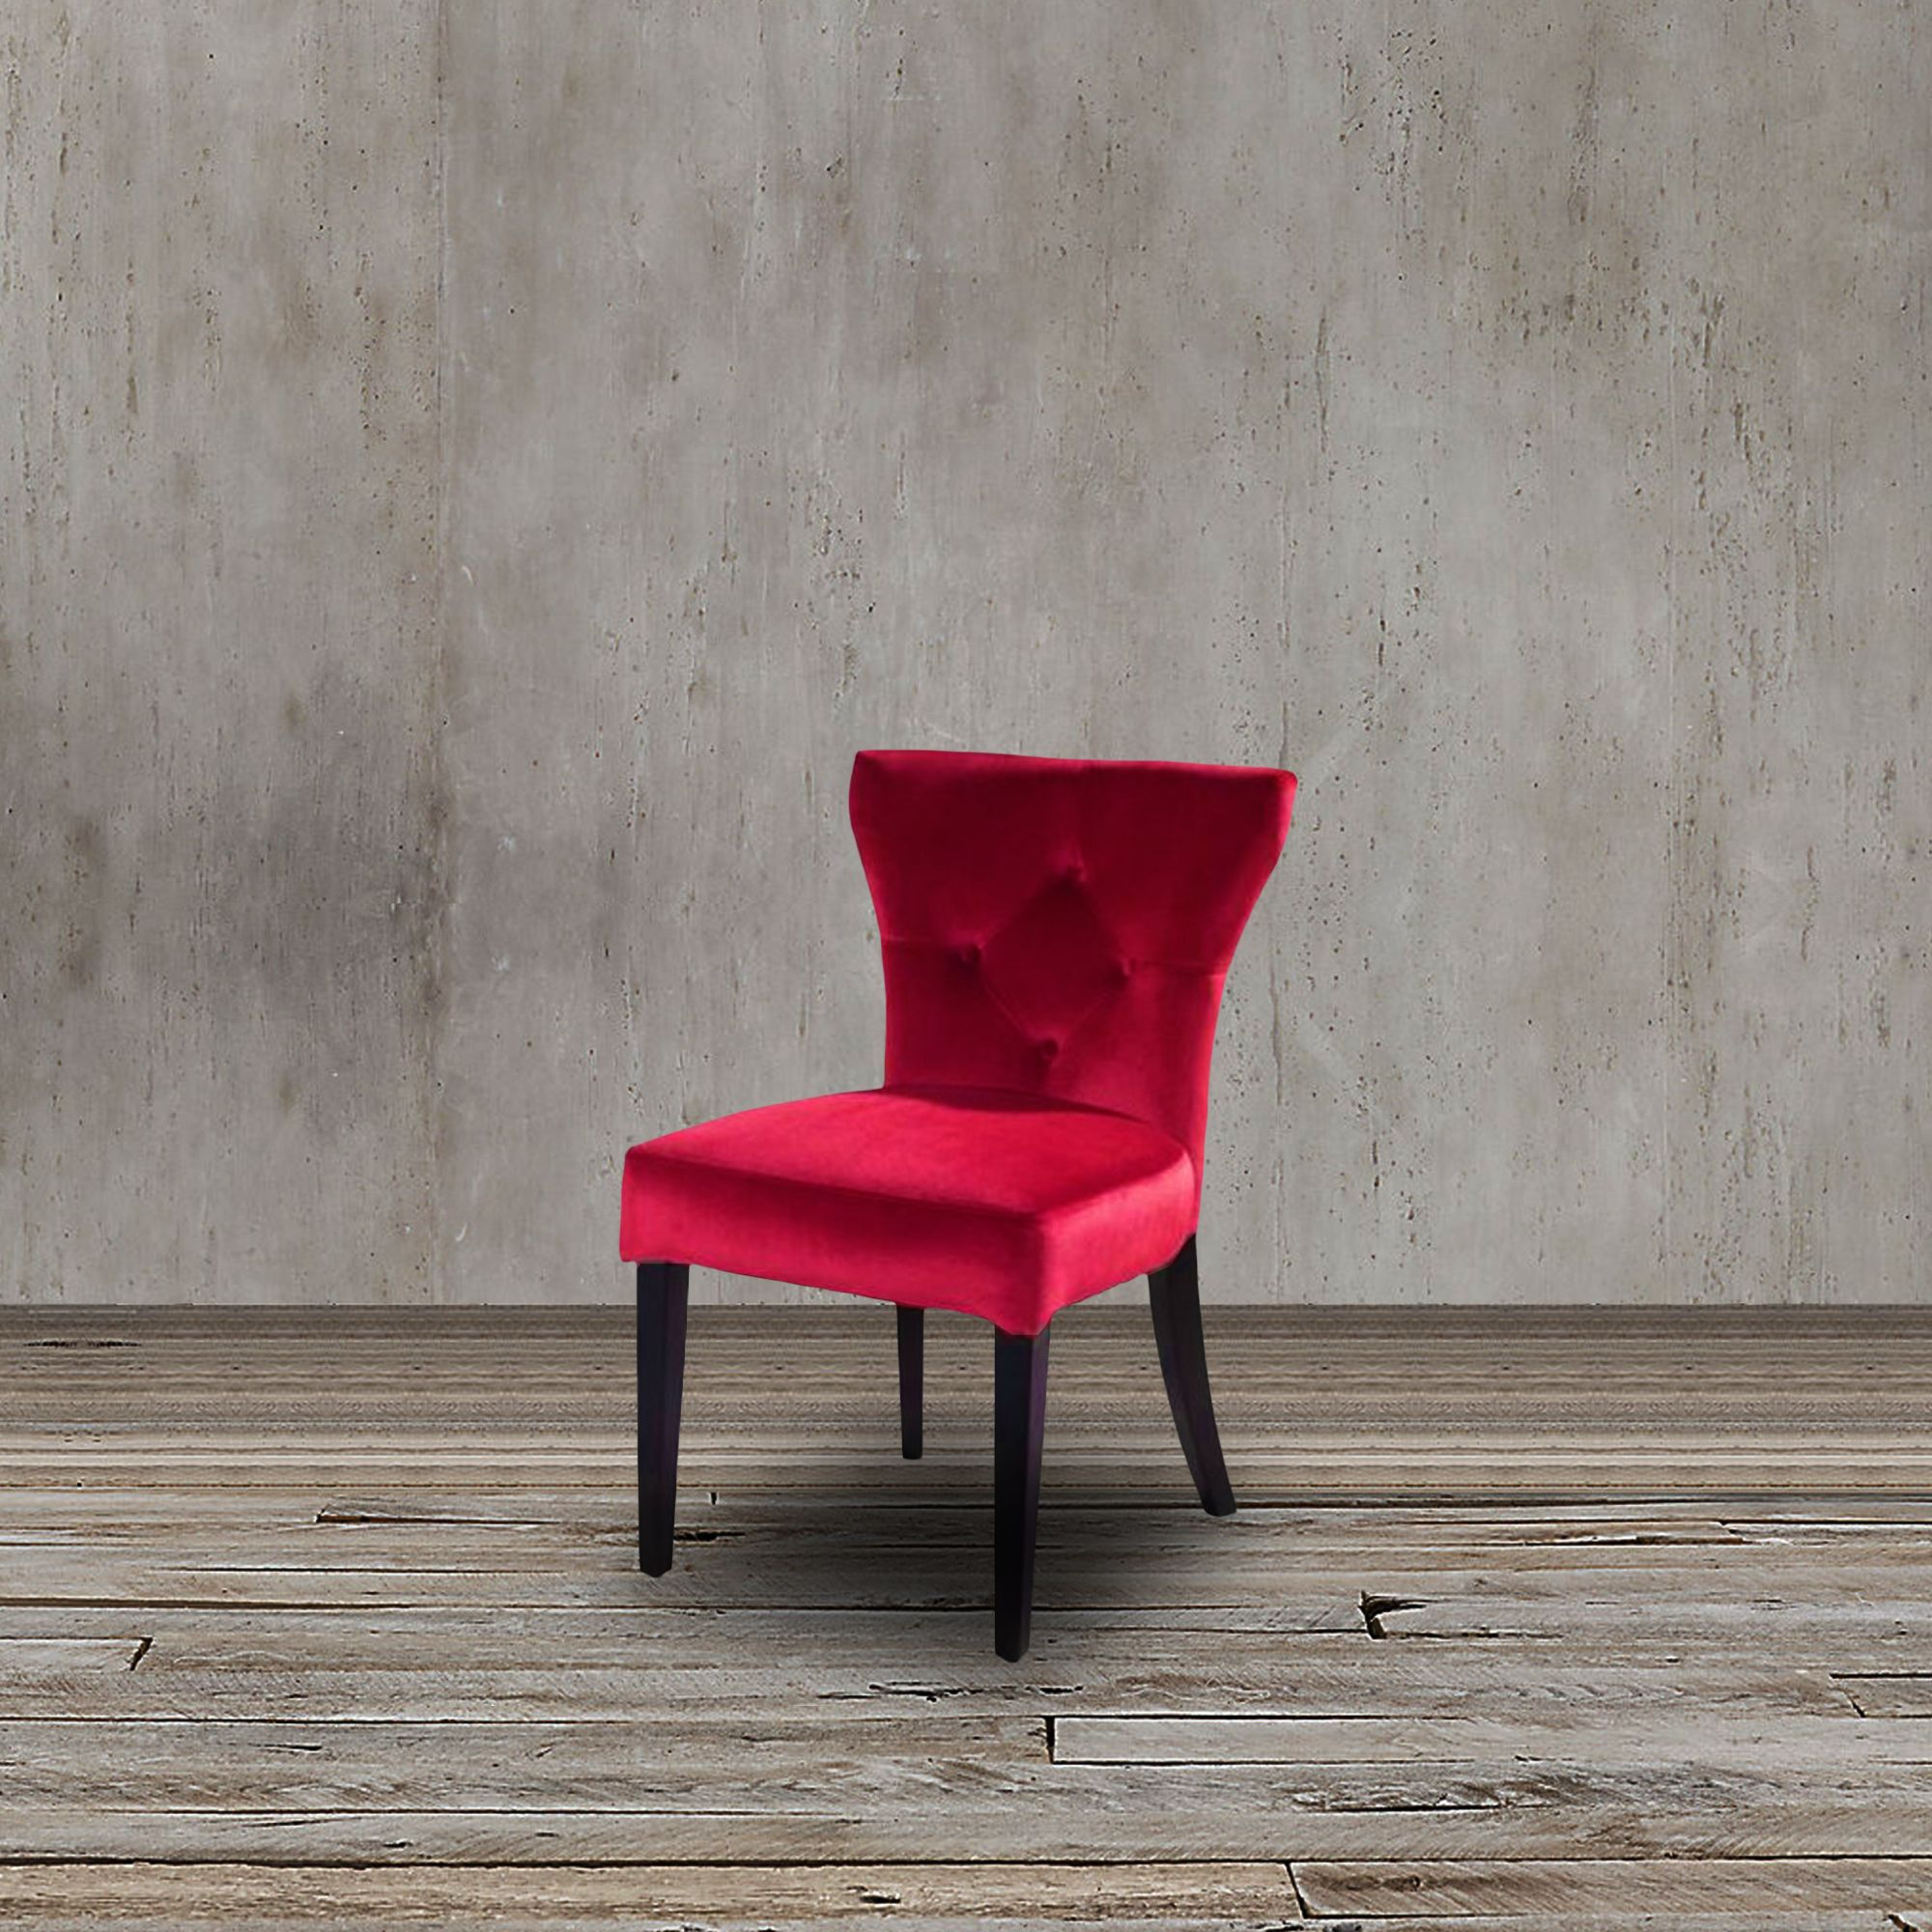 Peachy This Stylish Dining Chair Features Rich Red Velvet Uwap Interior Chair Design Uwaporg